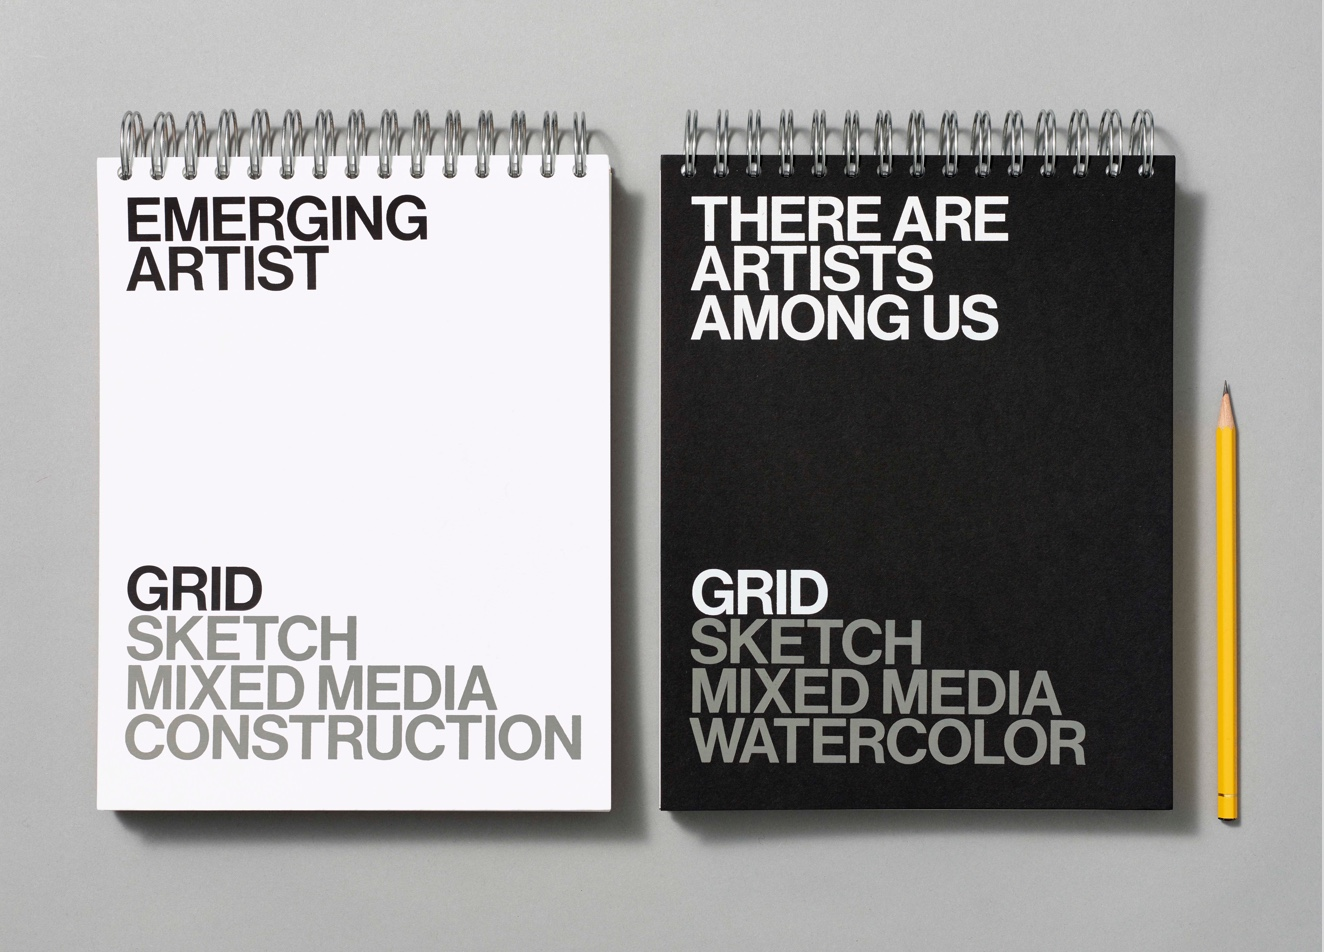 Two artist sketchpads, one white and one black, flanked by a pencil